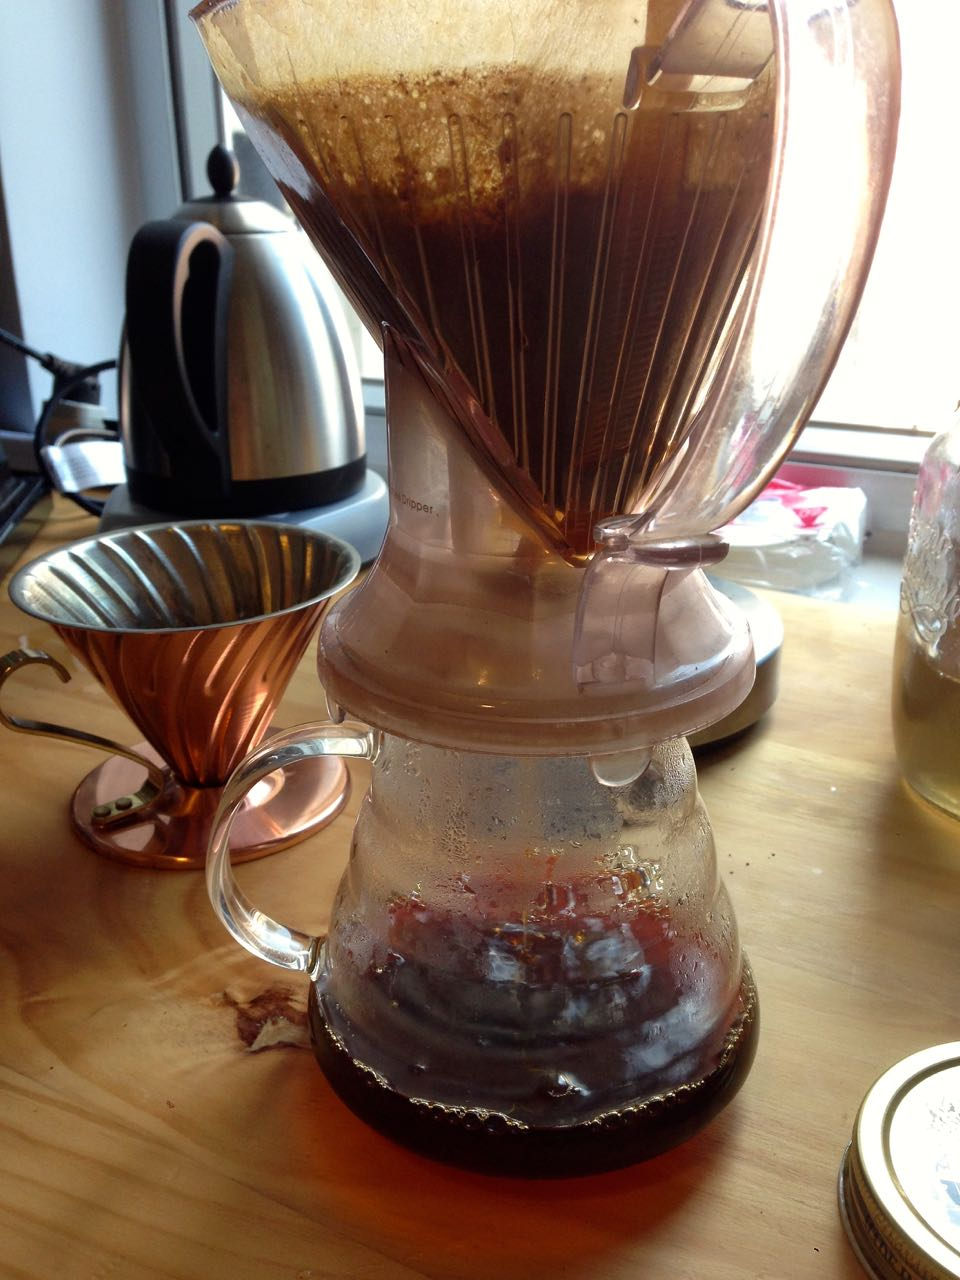 A Clever coffee dripper and a V60 in the background